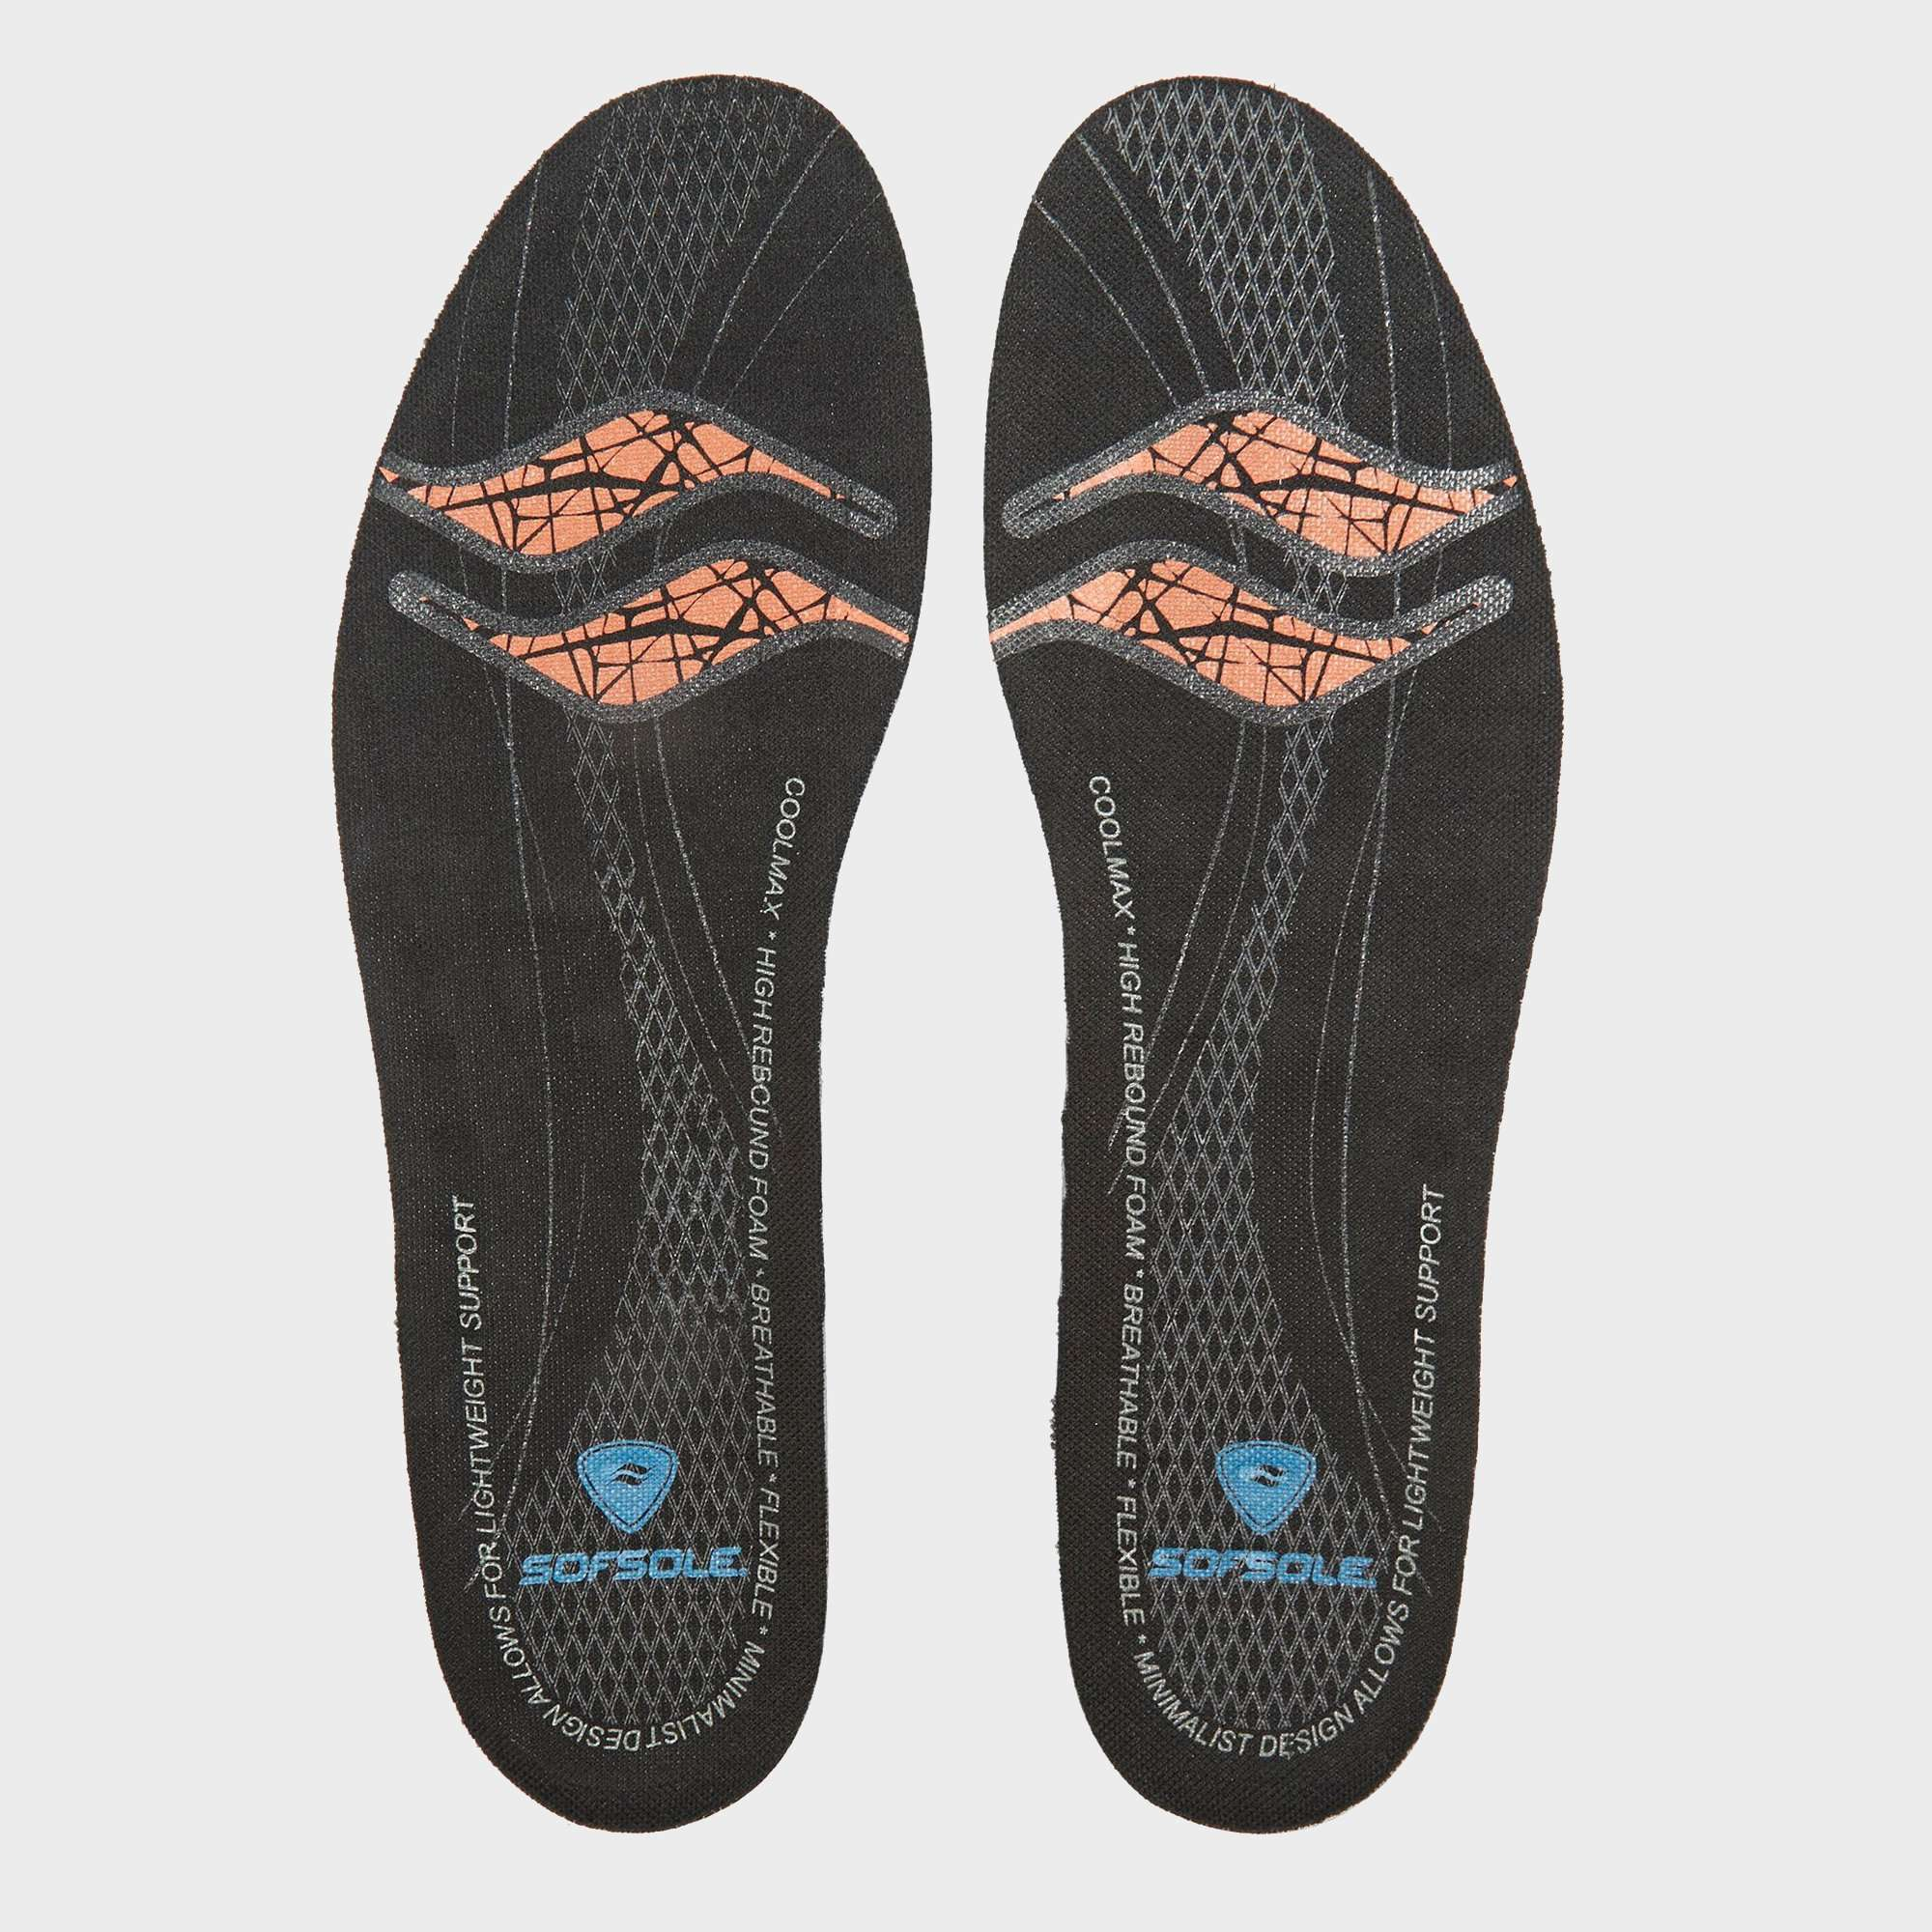 IMPLUS Sof Sole Thin Fit Insole